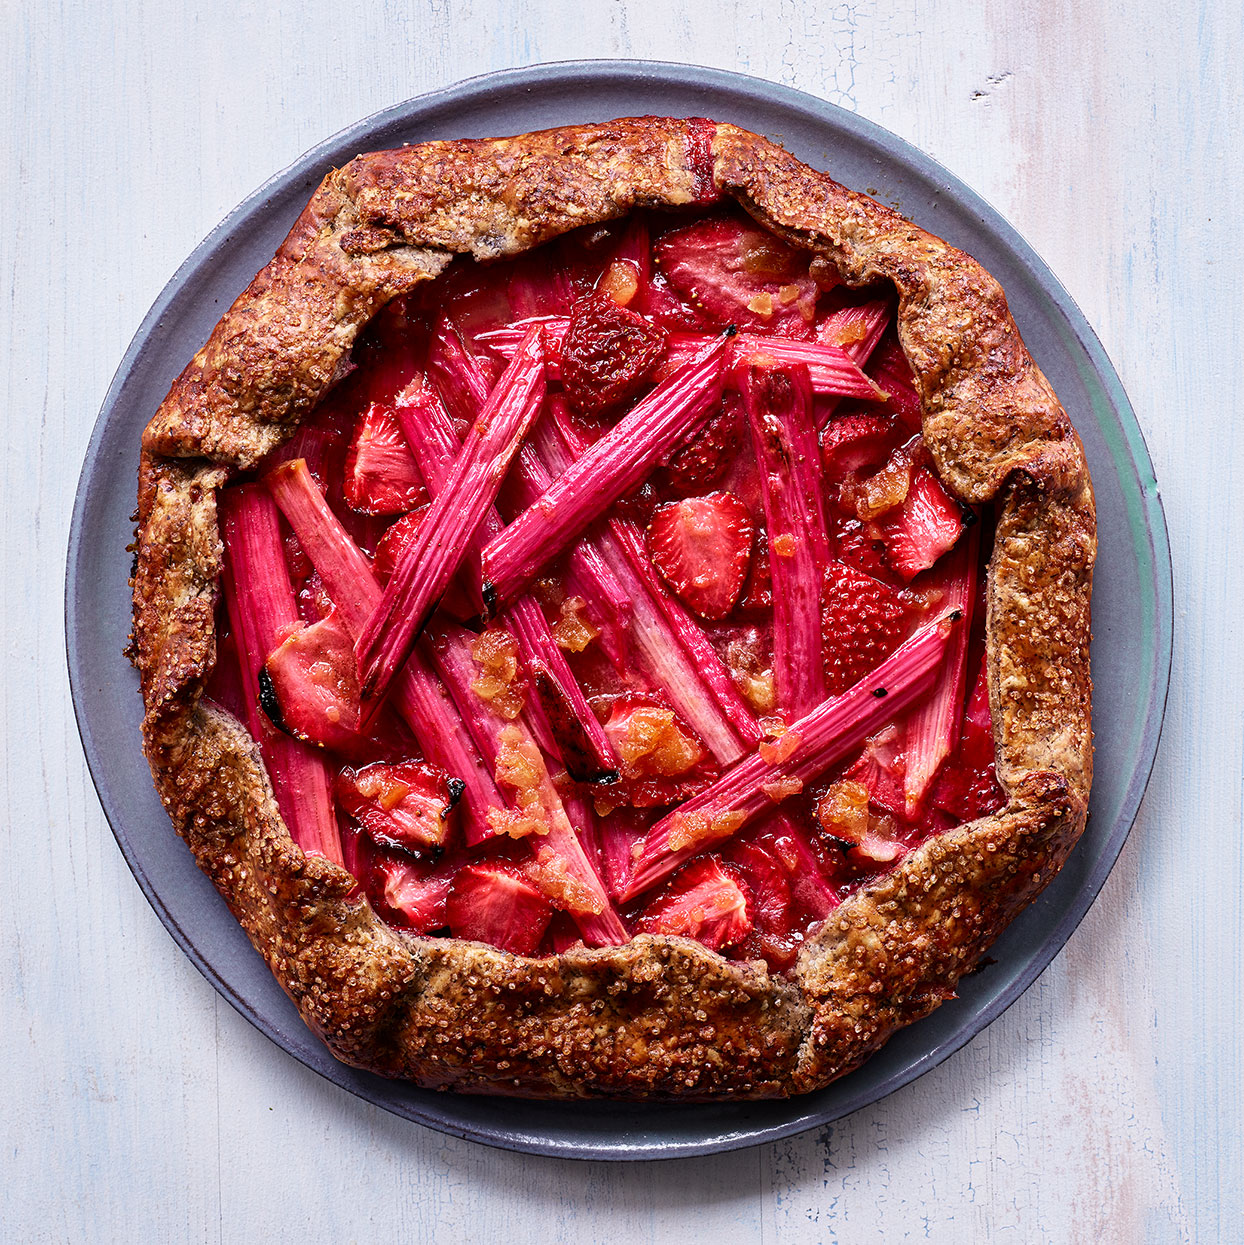 Strawberries and rhubarb are a classic springtime combo, but you could use cherries or apricots if you prefer. Baking this pretty galette on a heated surface like a baking stone creates a crisp, sturdy bottom. Source: EatingWell Magazine, May 2020